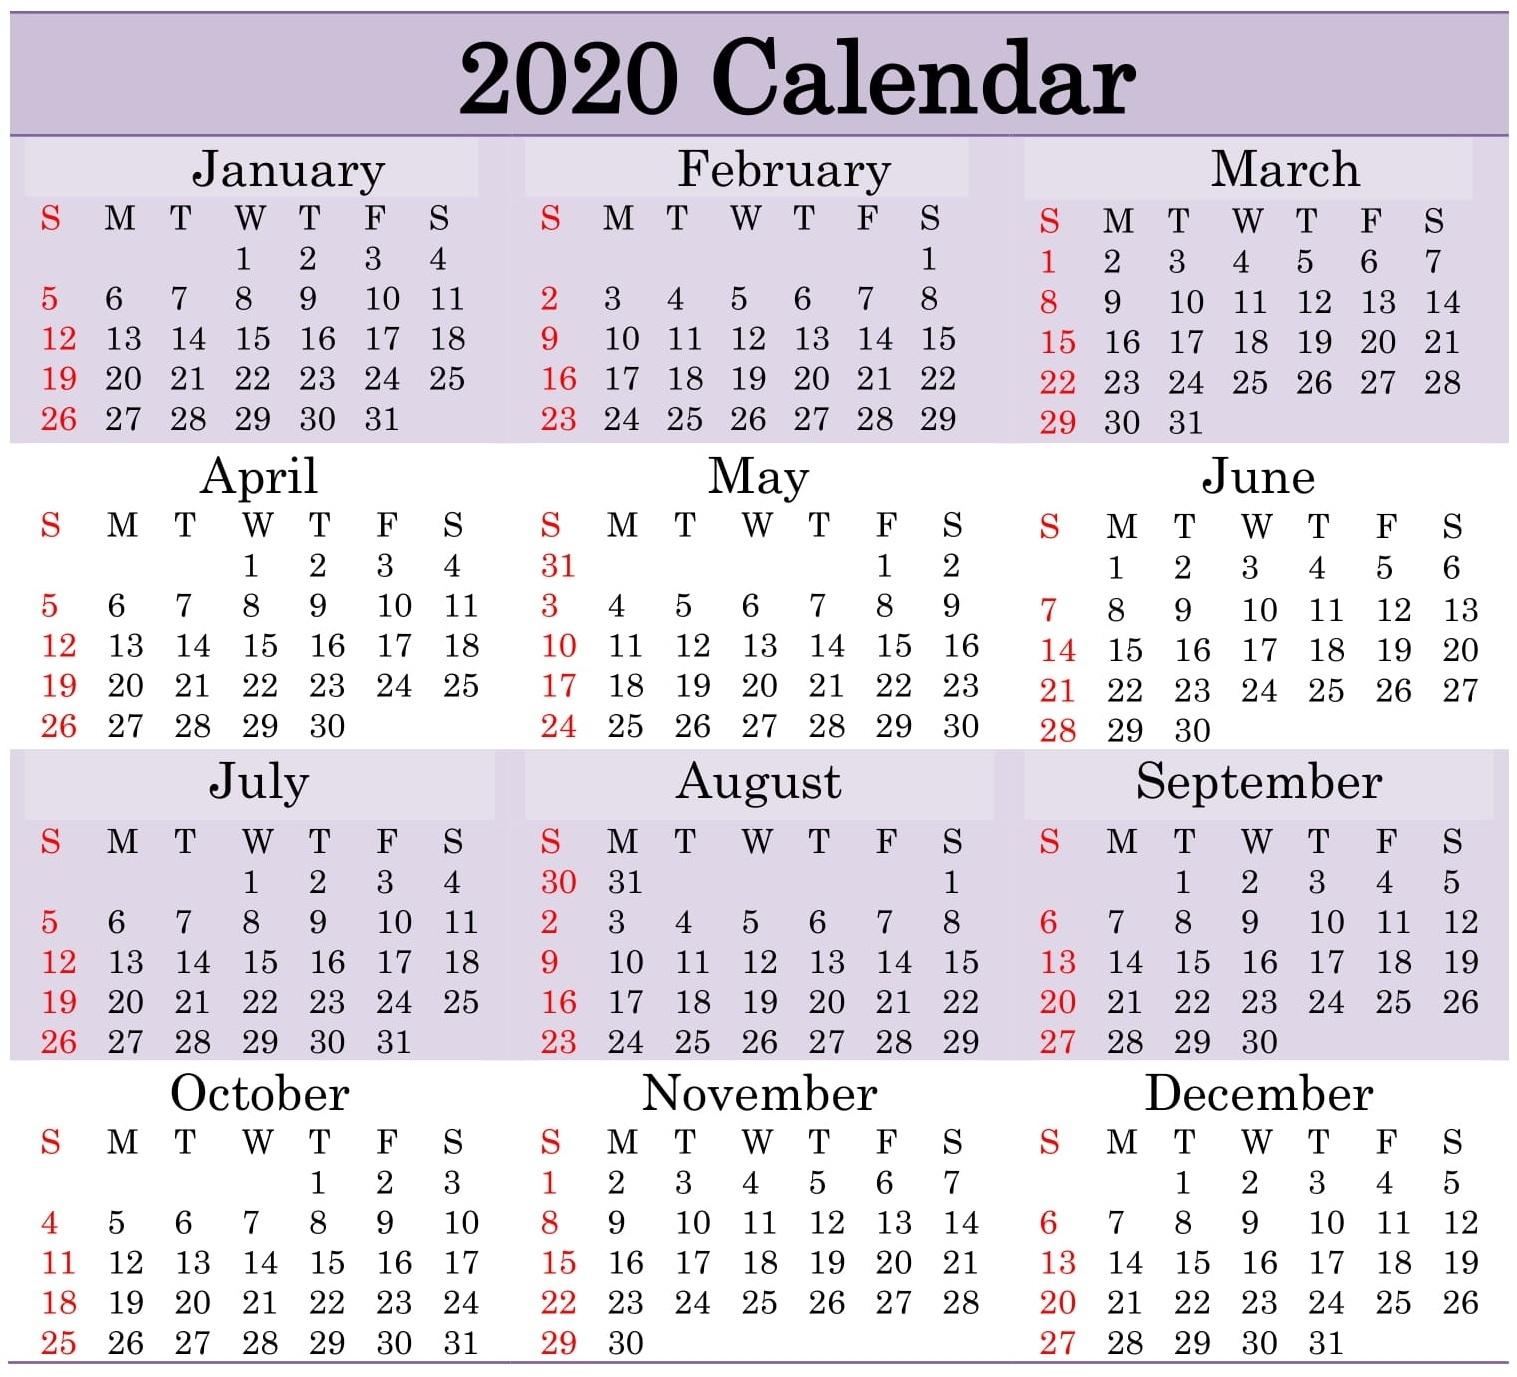 Free Printable 2020 Calendar Word Document - Latest